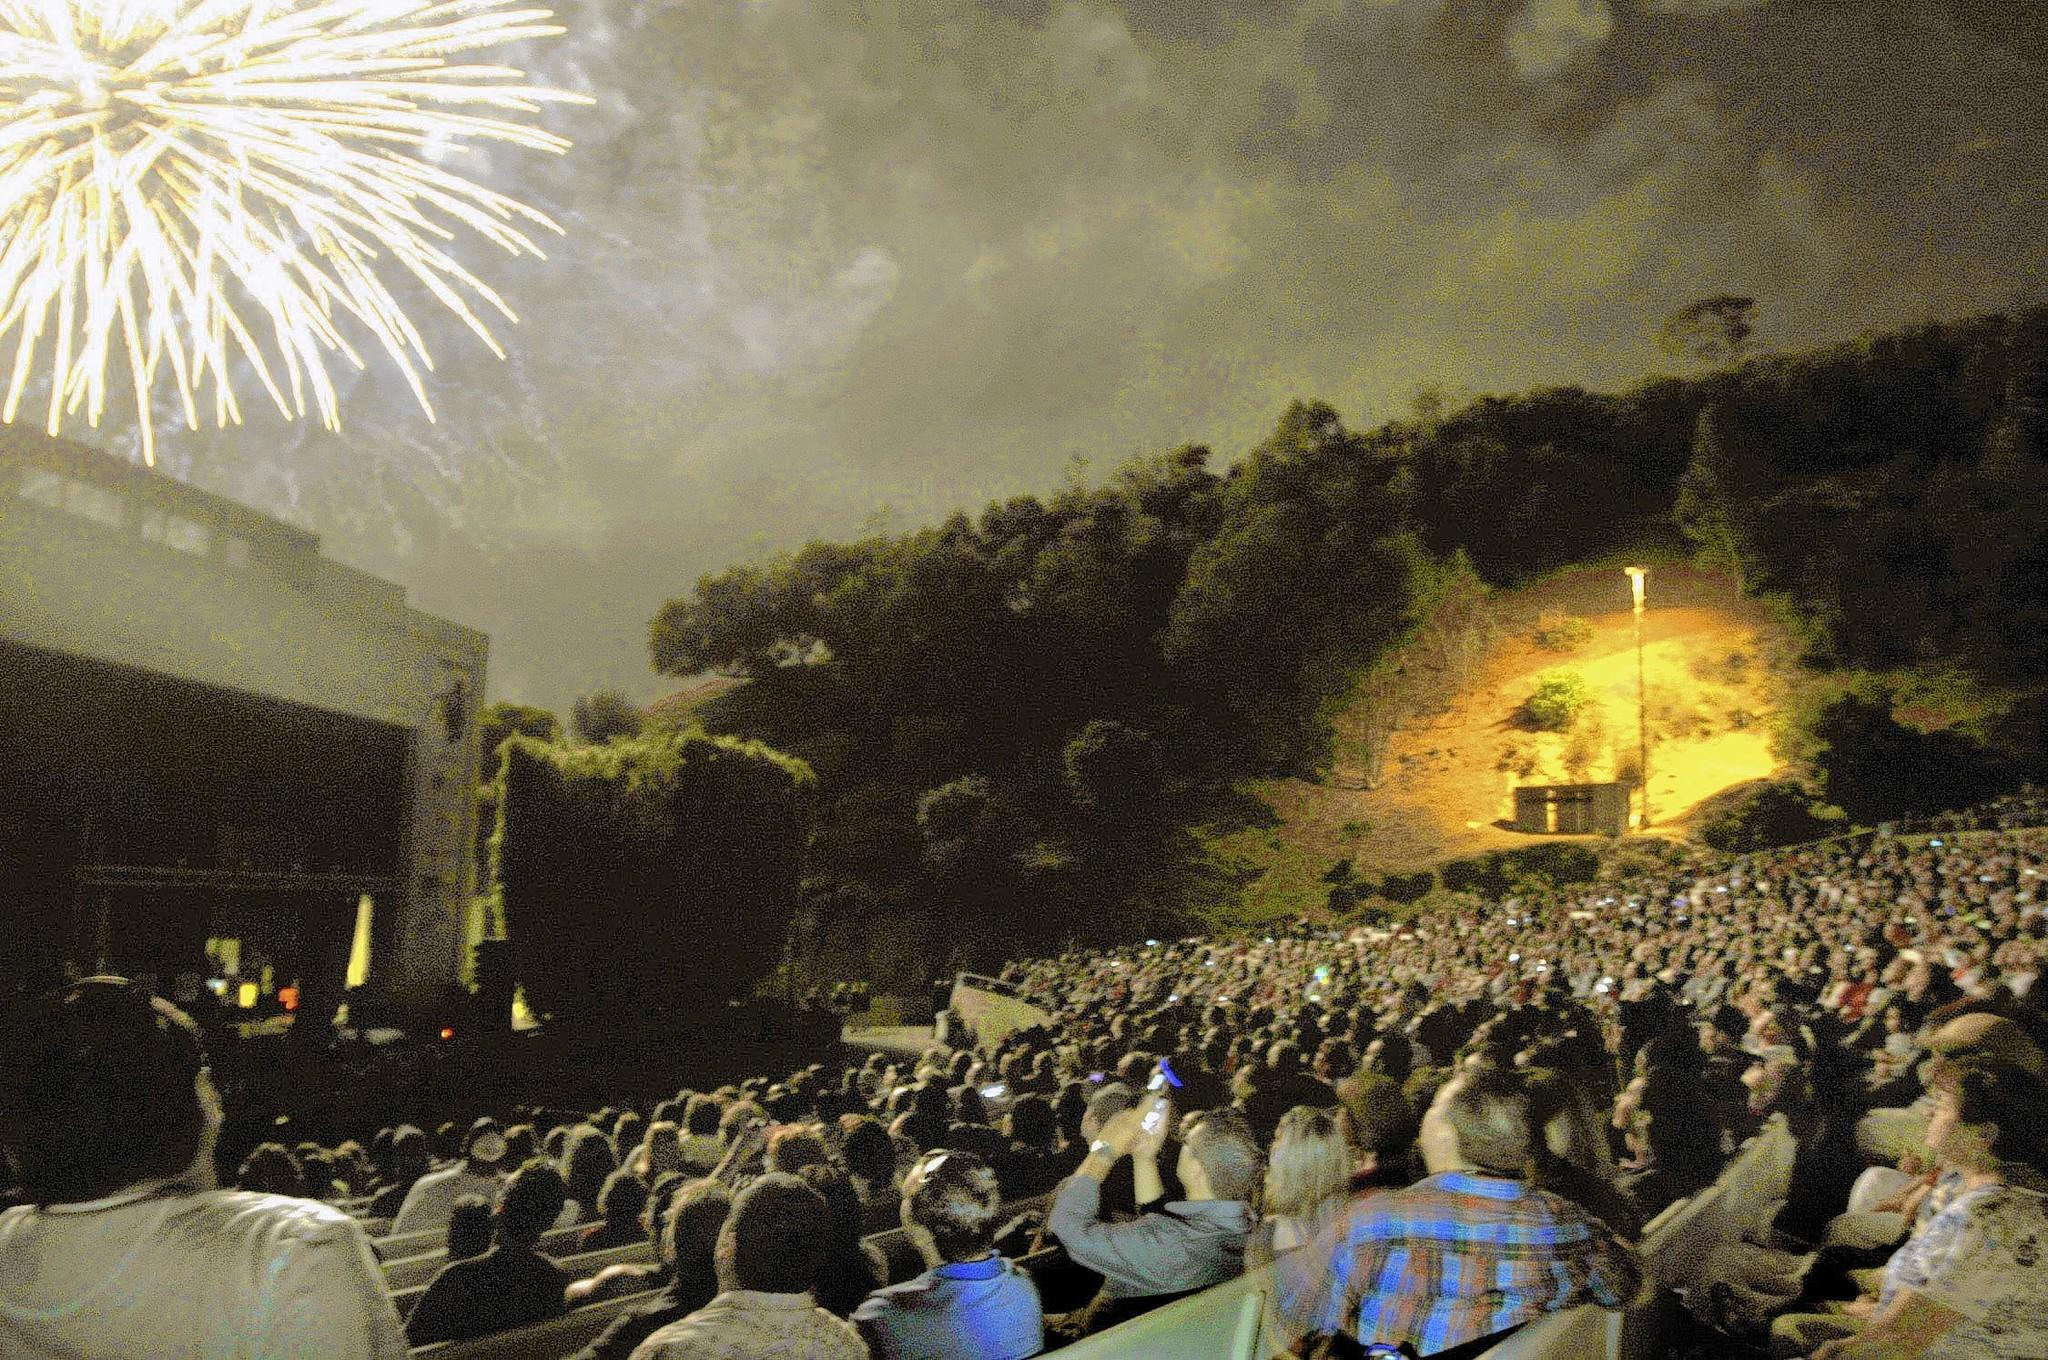 The annual Fourth of July concert and fireworks at Burbank's Starlight Bowl, photographed on Thursday, July 4, 2013.